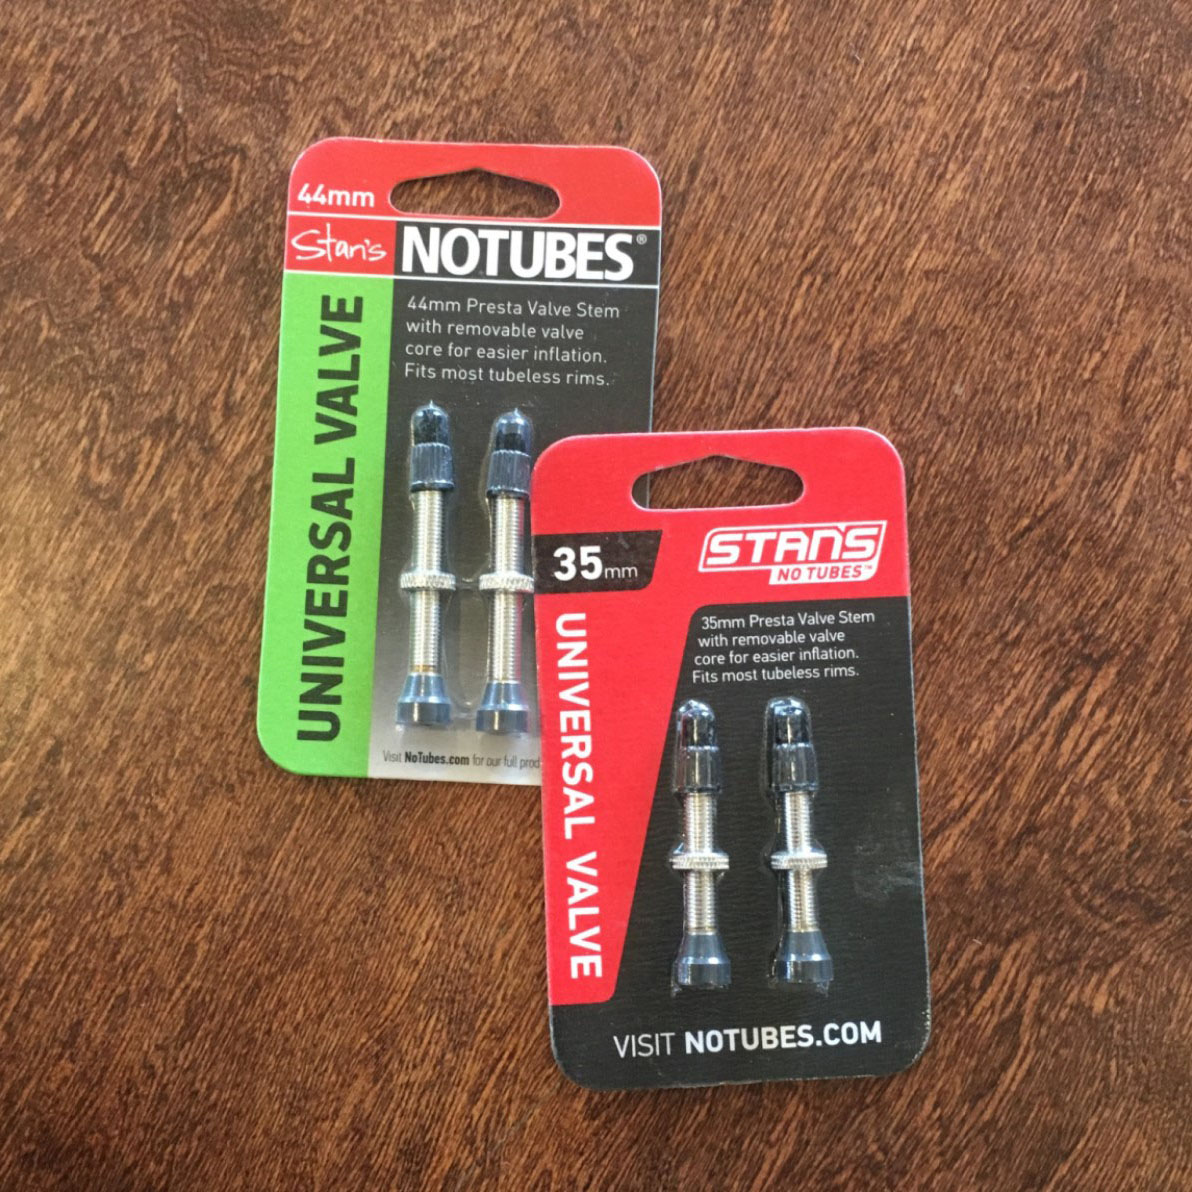 Stans No Tubes tubeless tire valve stems